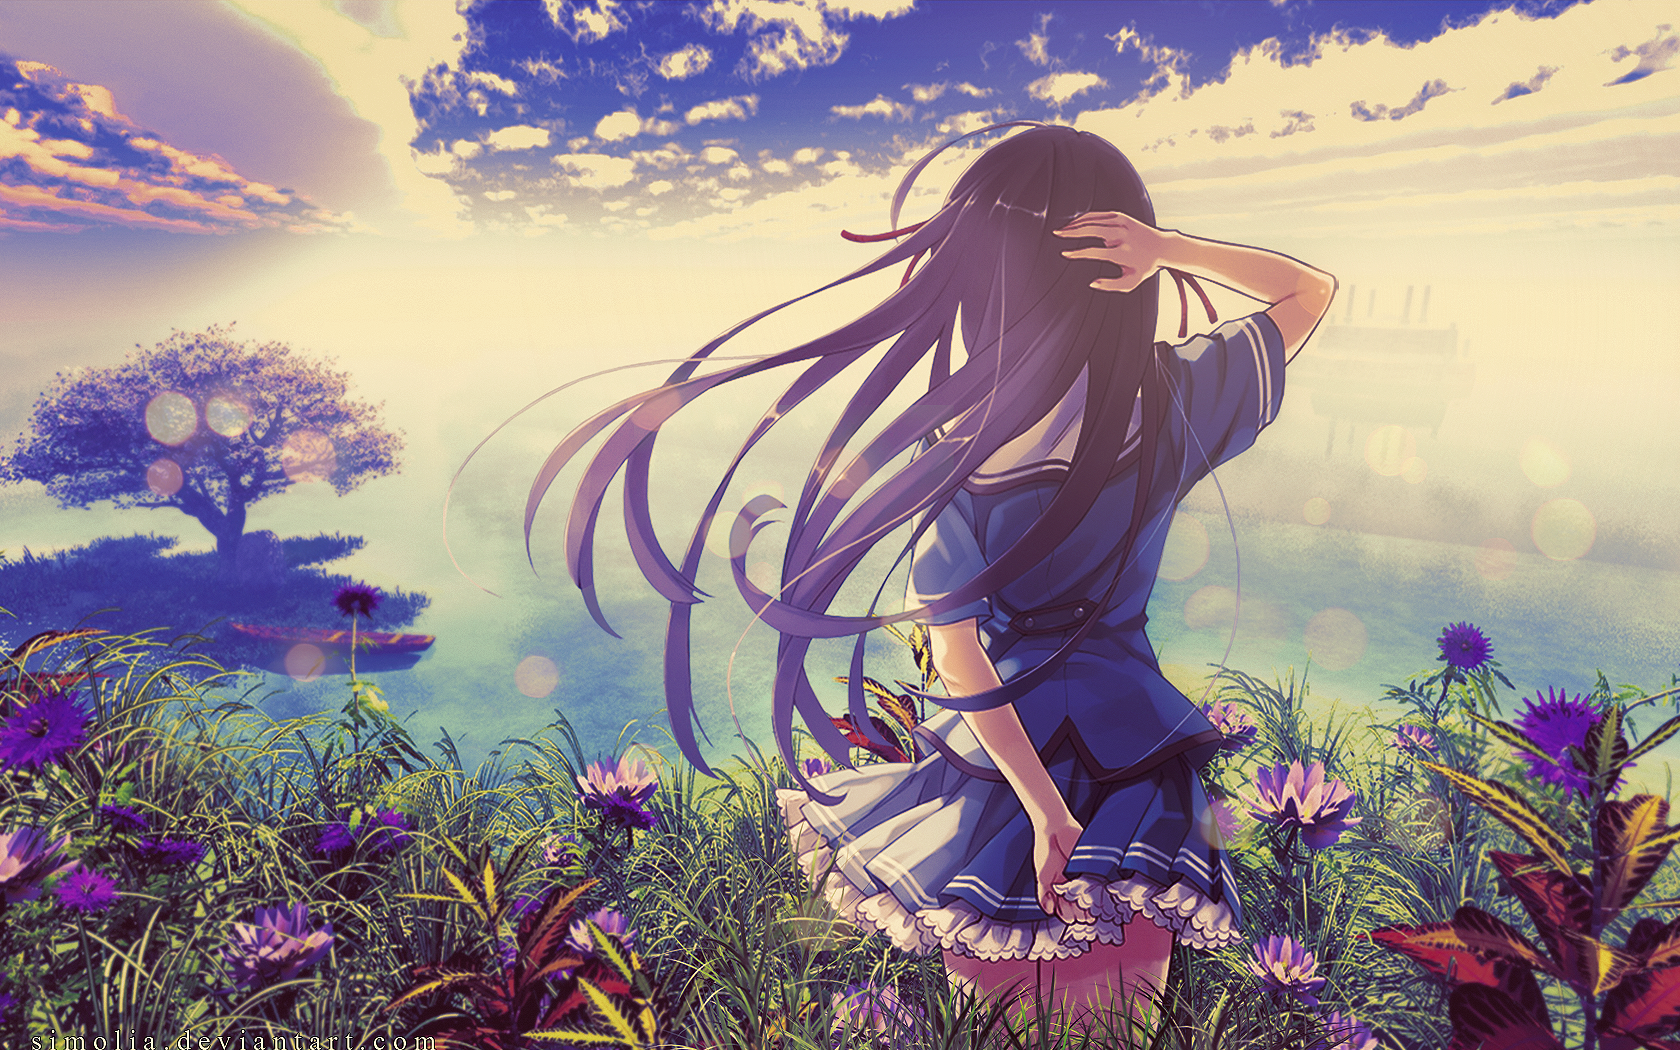 anime wallpaper tumblr-7 | HD Wallpapers, HD images, HD ...